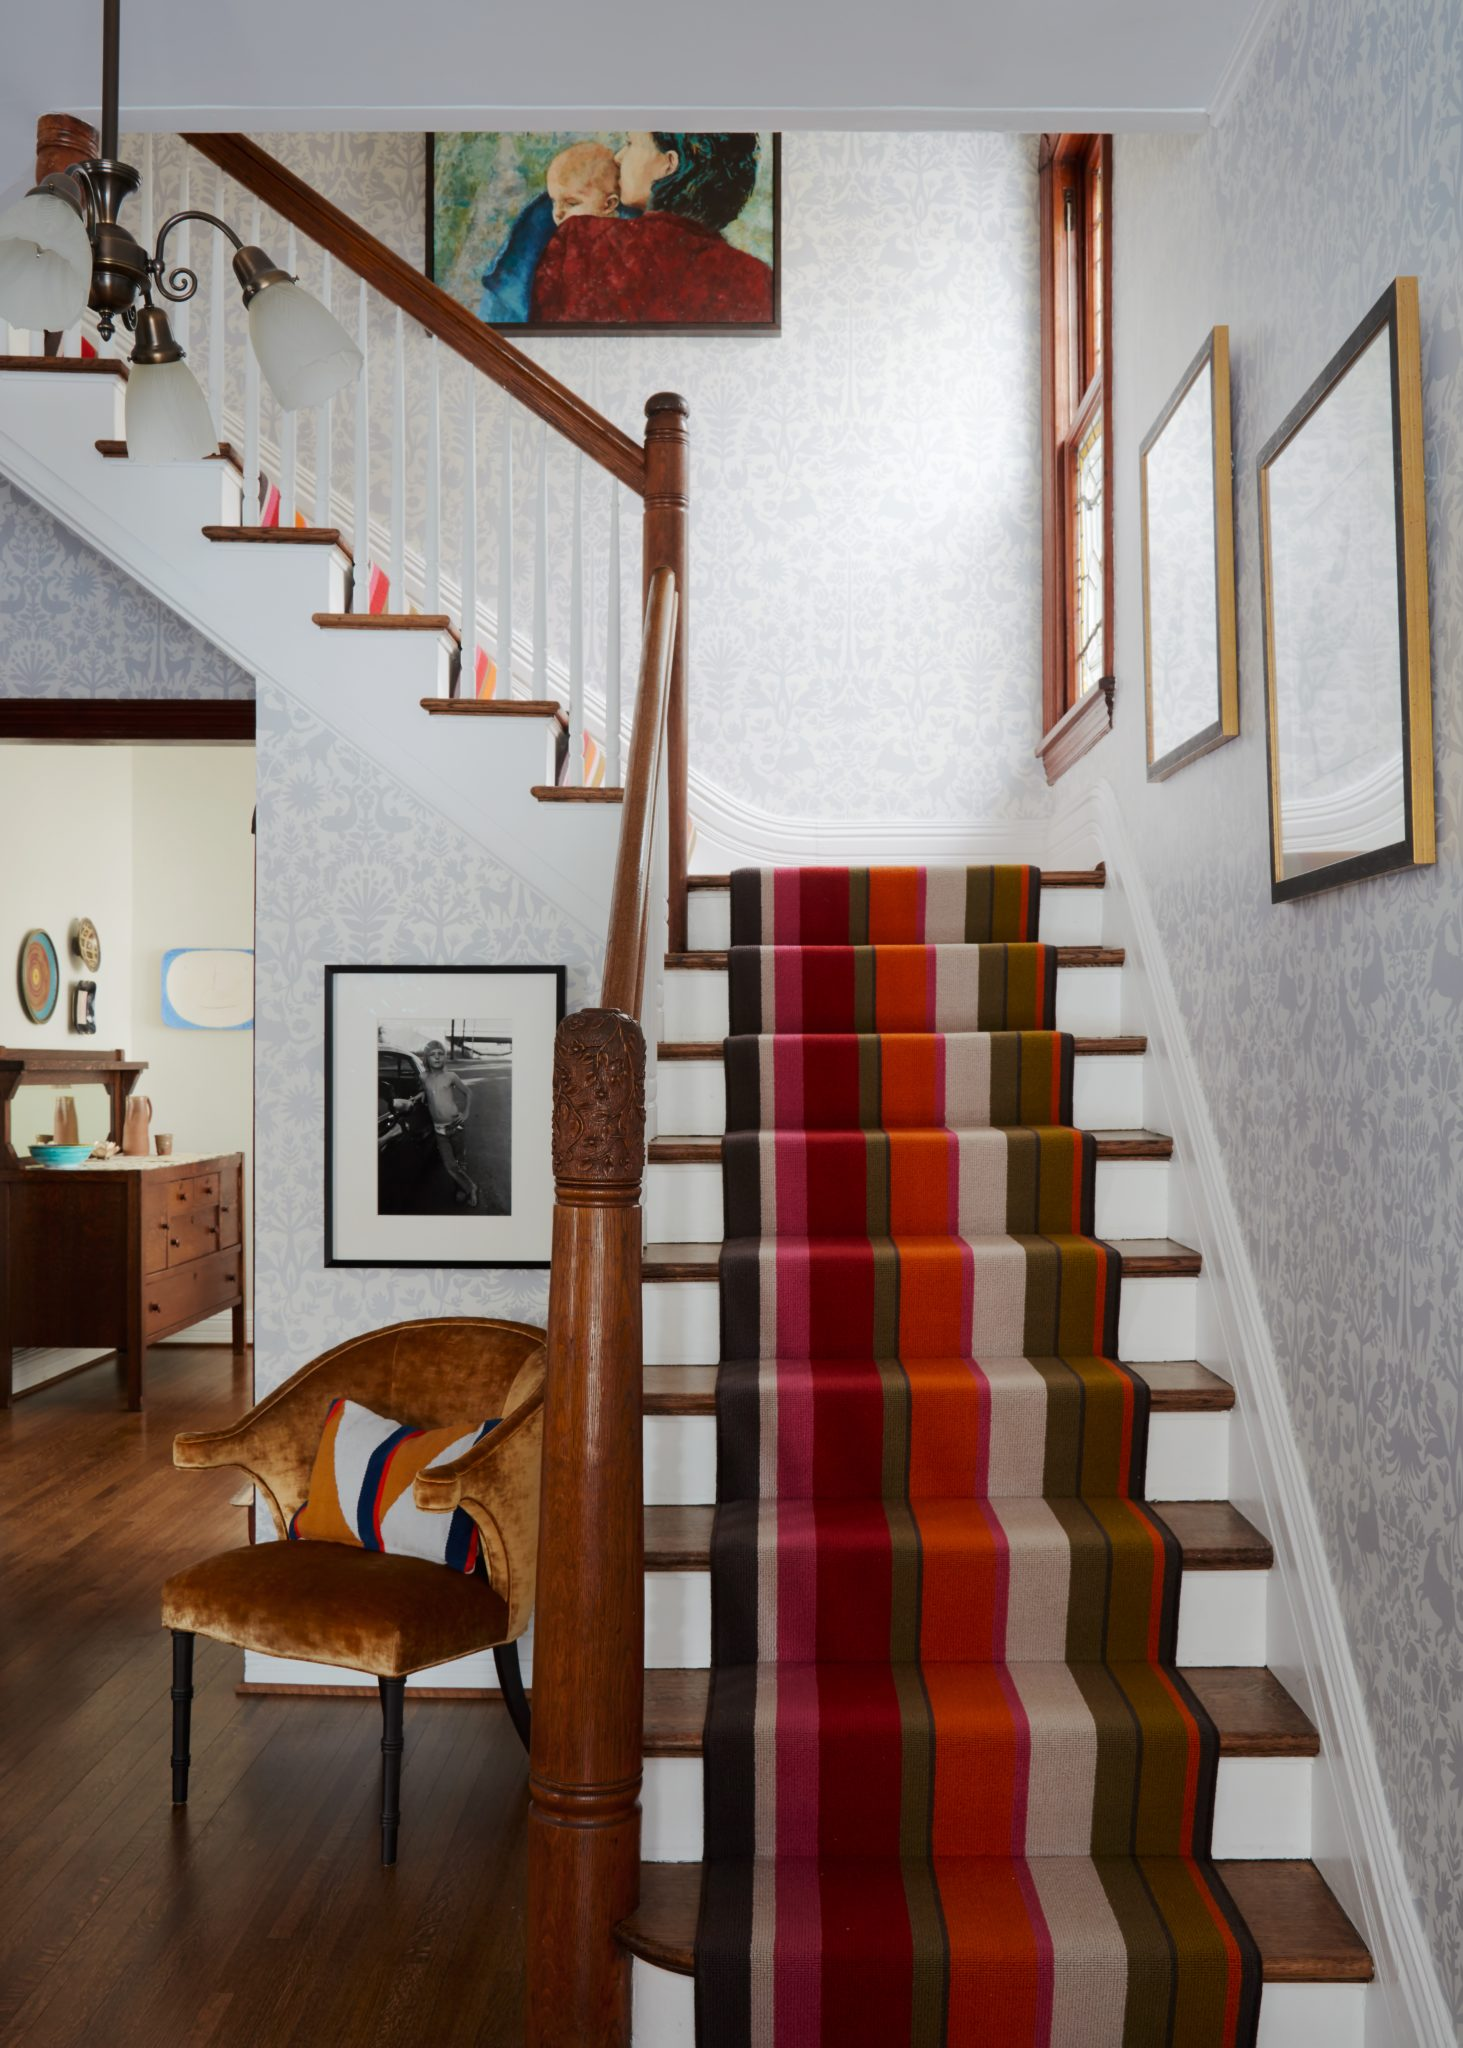 Entry stairs with colorful runner and wallpaper by 2to5 Design